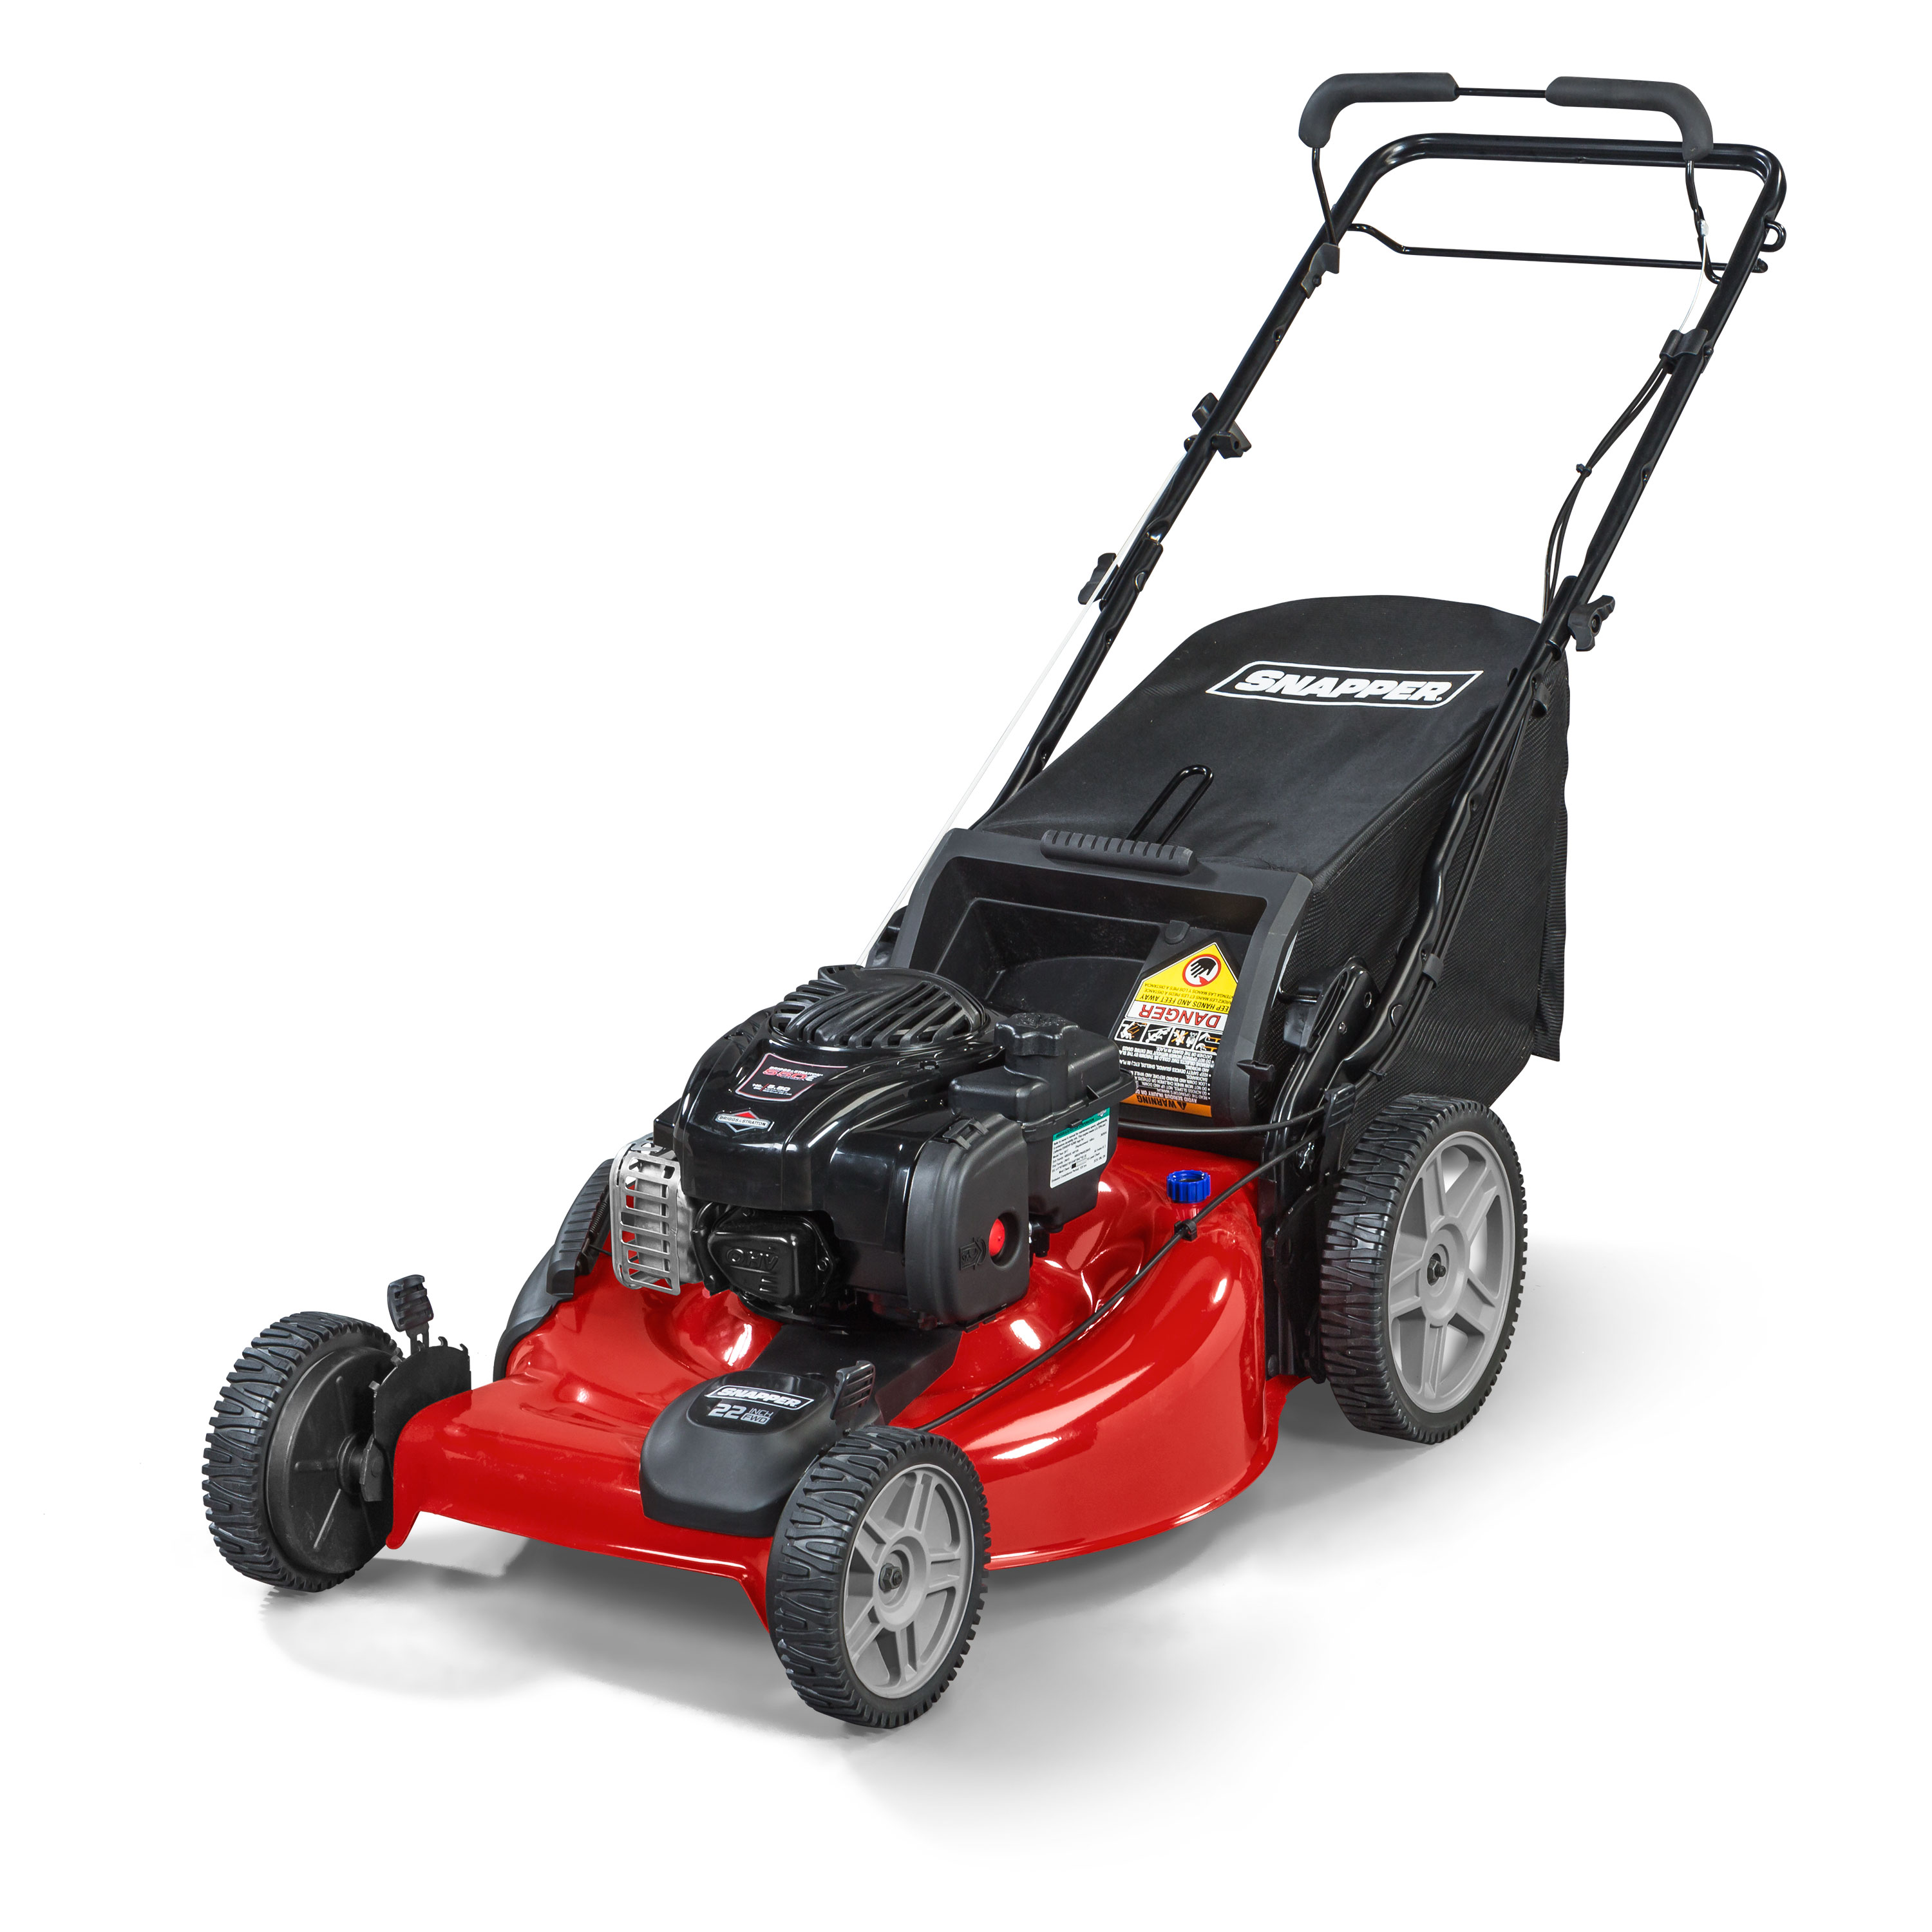 Snapper 22 in. 140cc Briggs & Stratton 3-in-1 High Wheel FWD Lawnmower